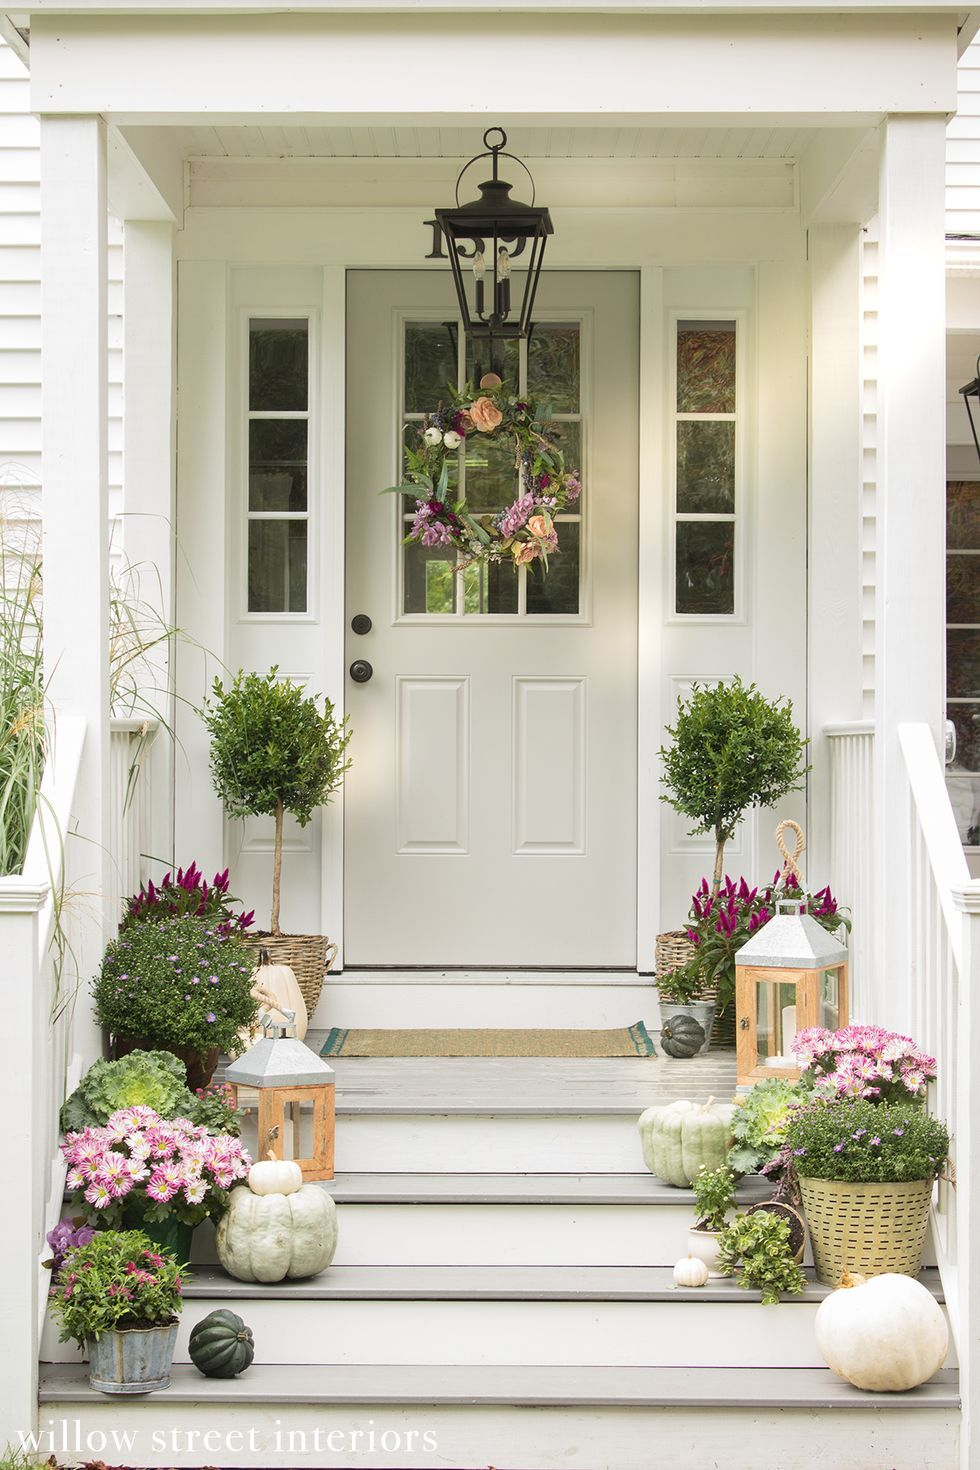 30+ Fall Porch Ideas That'll Add a Festive Touch to Your Home